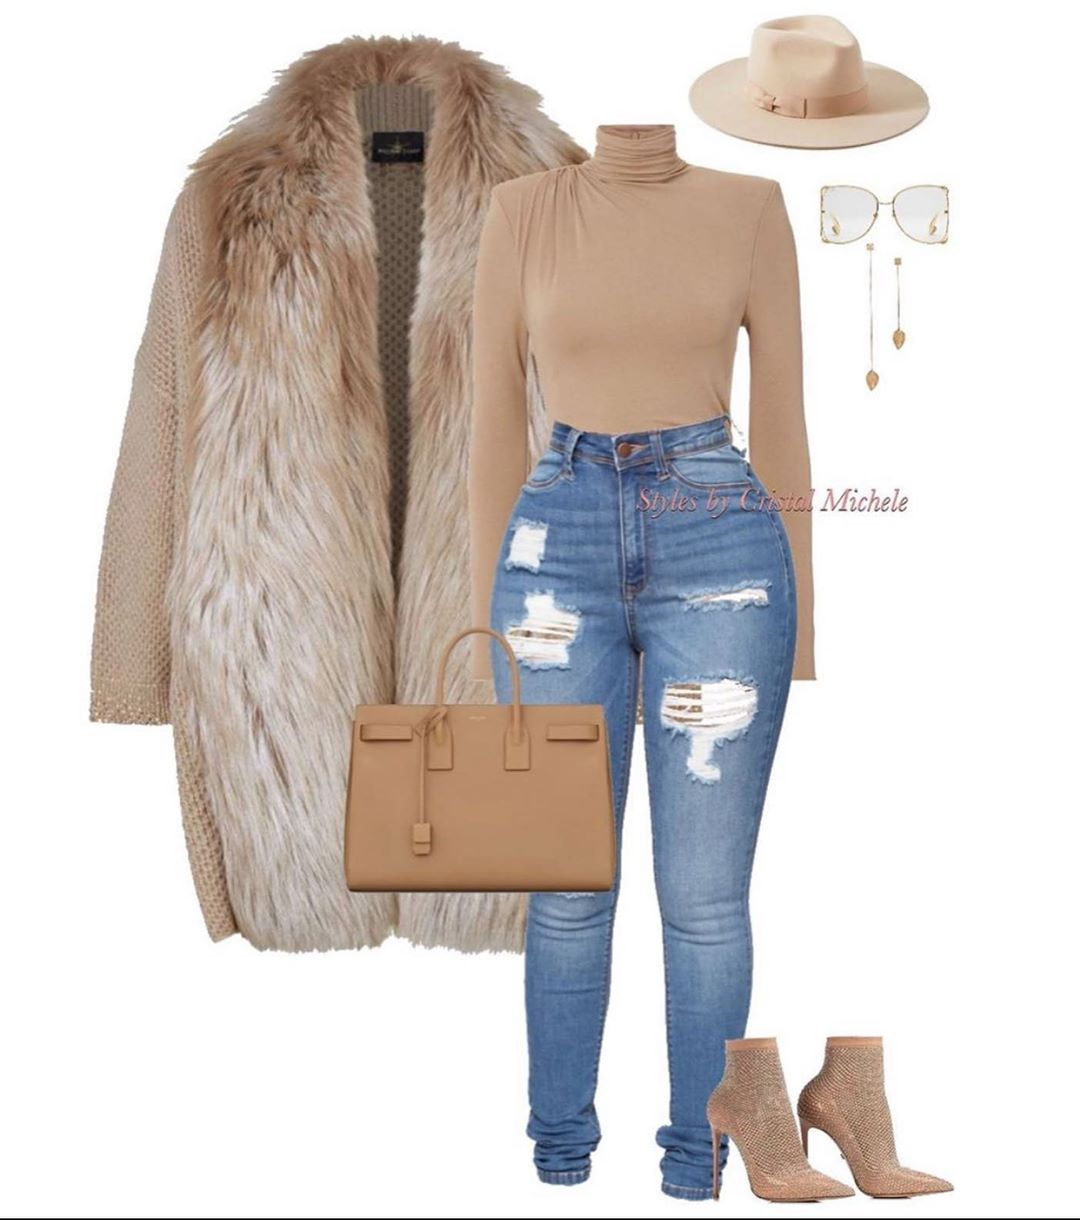 """Zerquera �� on Instagram: """"I hear it's cold in Atlanta..... here's a cute inspo look by my style sis @stylesbycristalmichele �FOLLOW️"""""""